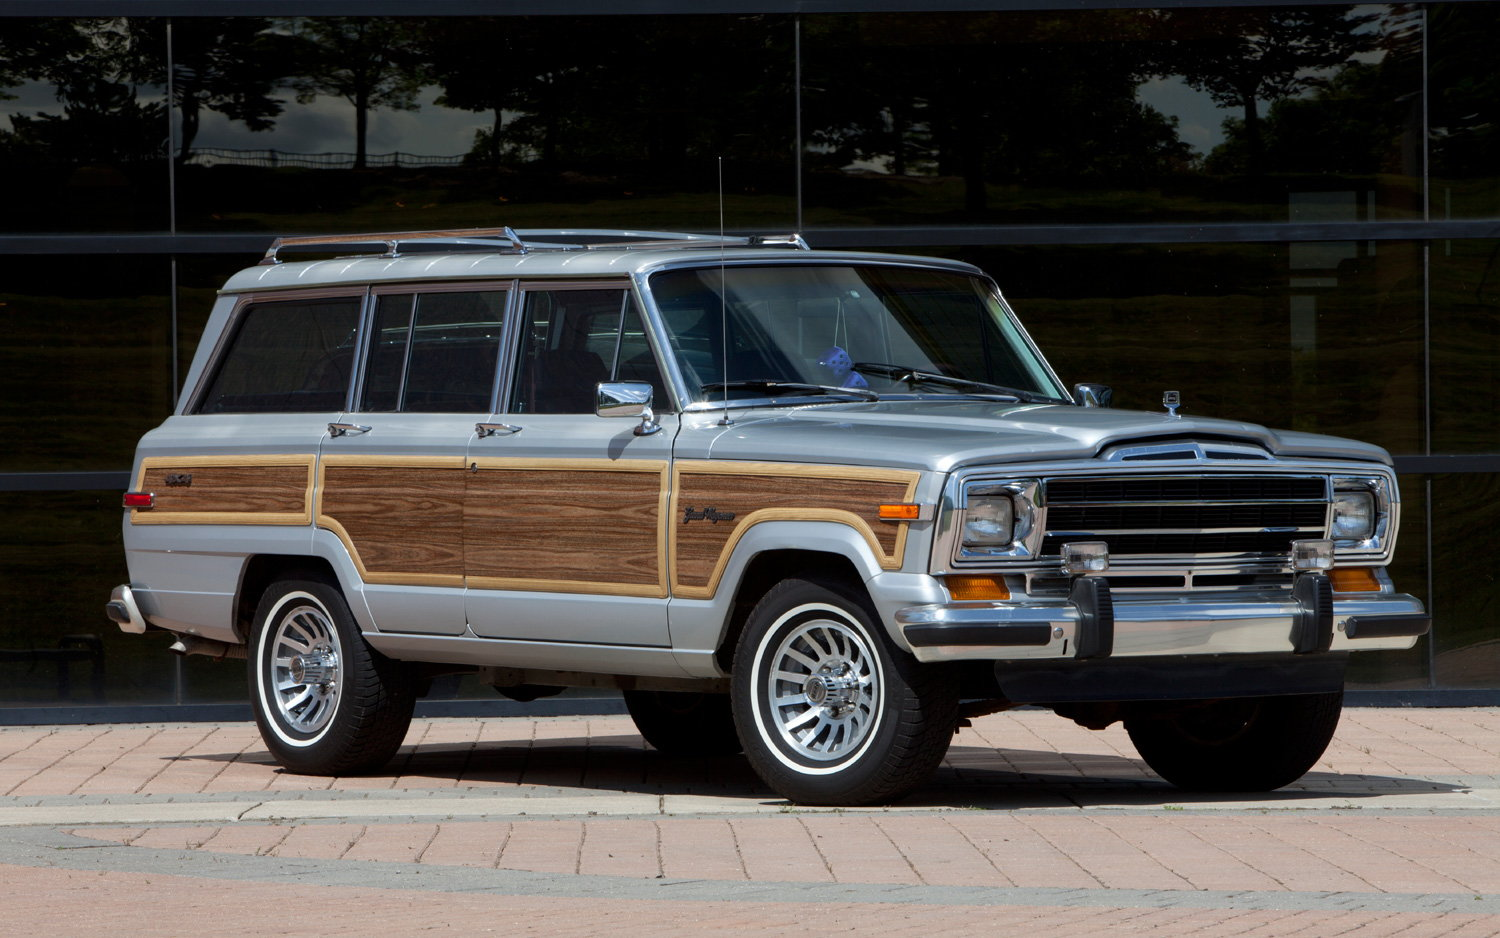 2015 Jeep Wrangler Inside >> Jeep Grand Wagoneer to tackle Range Rover in 2018 - Page 3